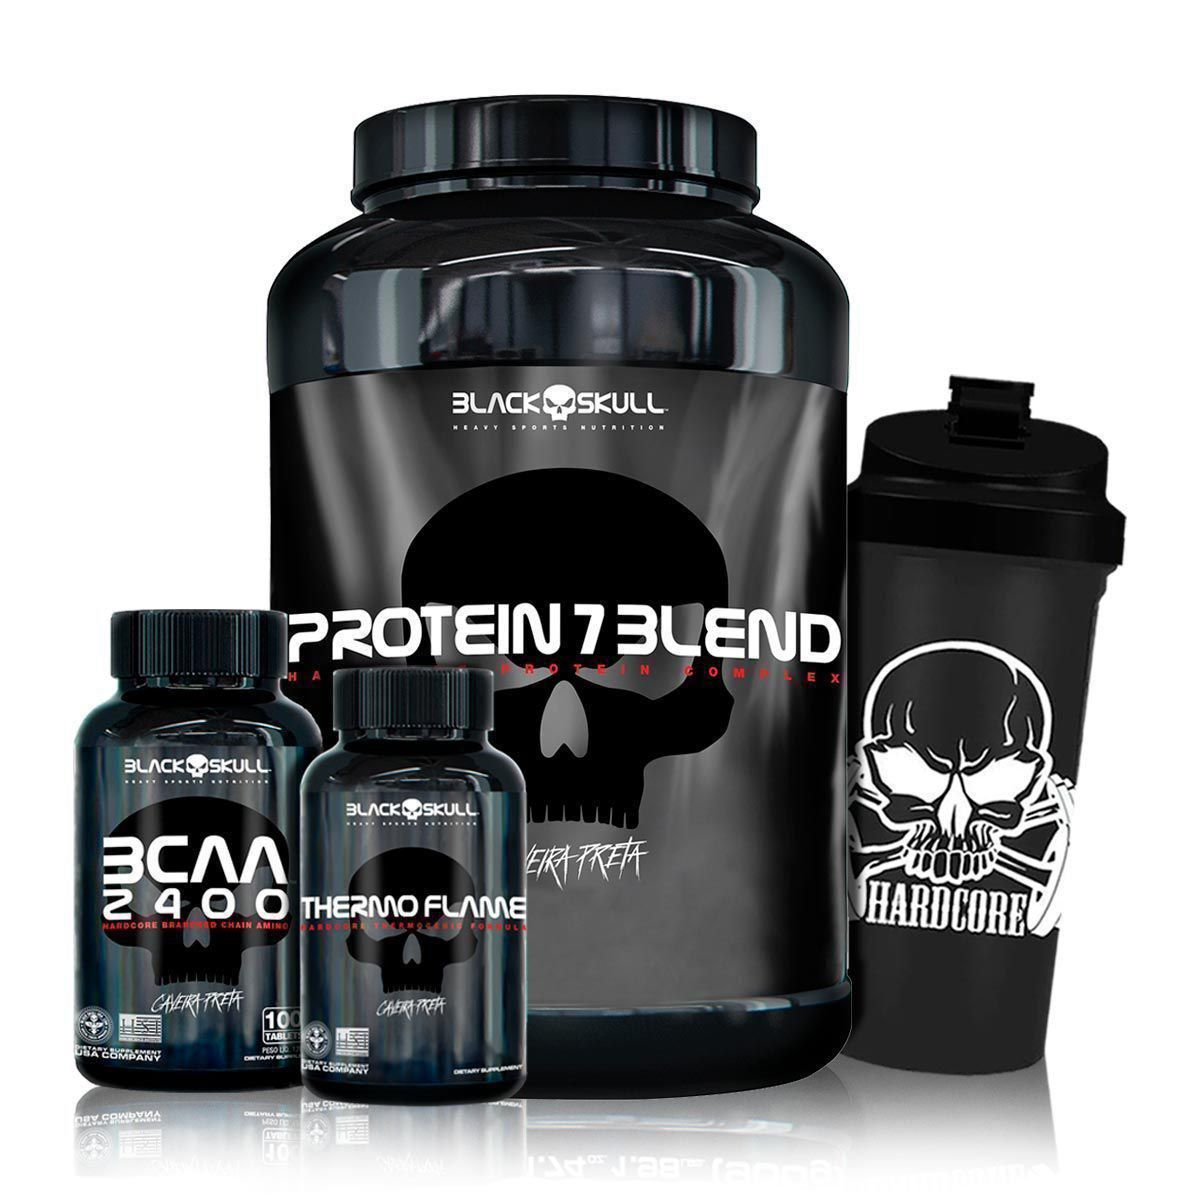 Kit Whey 7 Blend + Bcaa 2400 + Thermo Flame + Coq - Black Skull